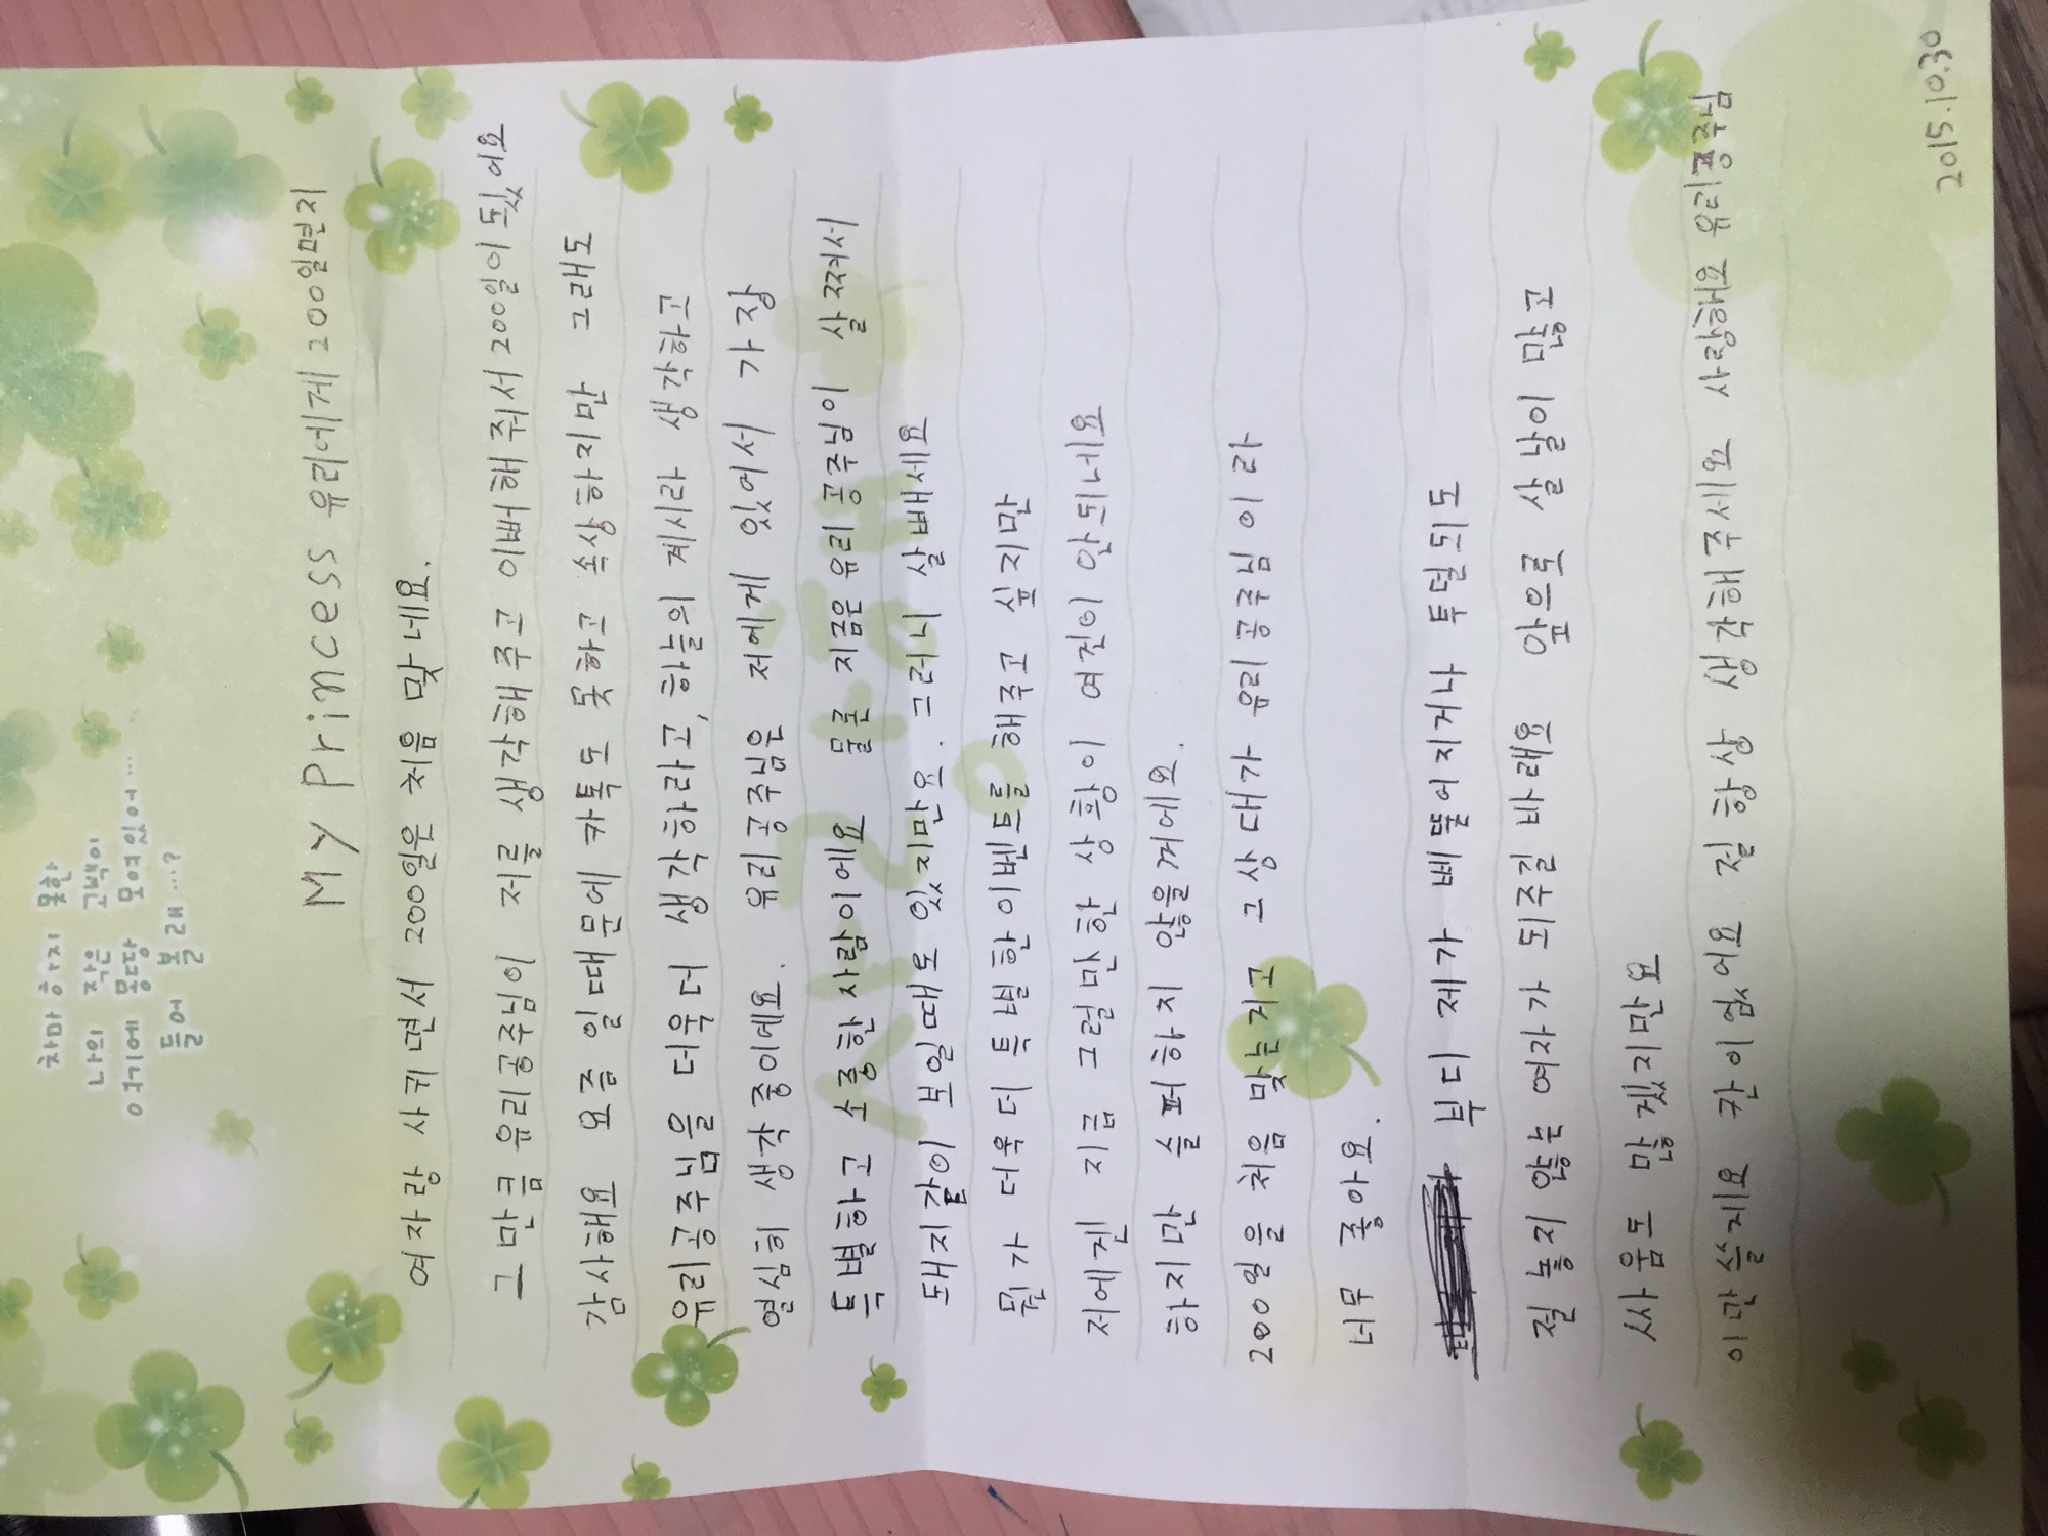 Letter from my love❤️ by yoori